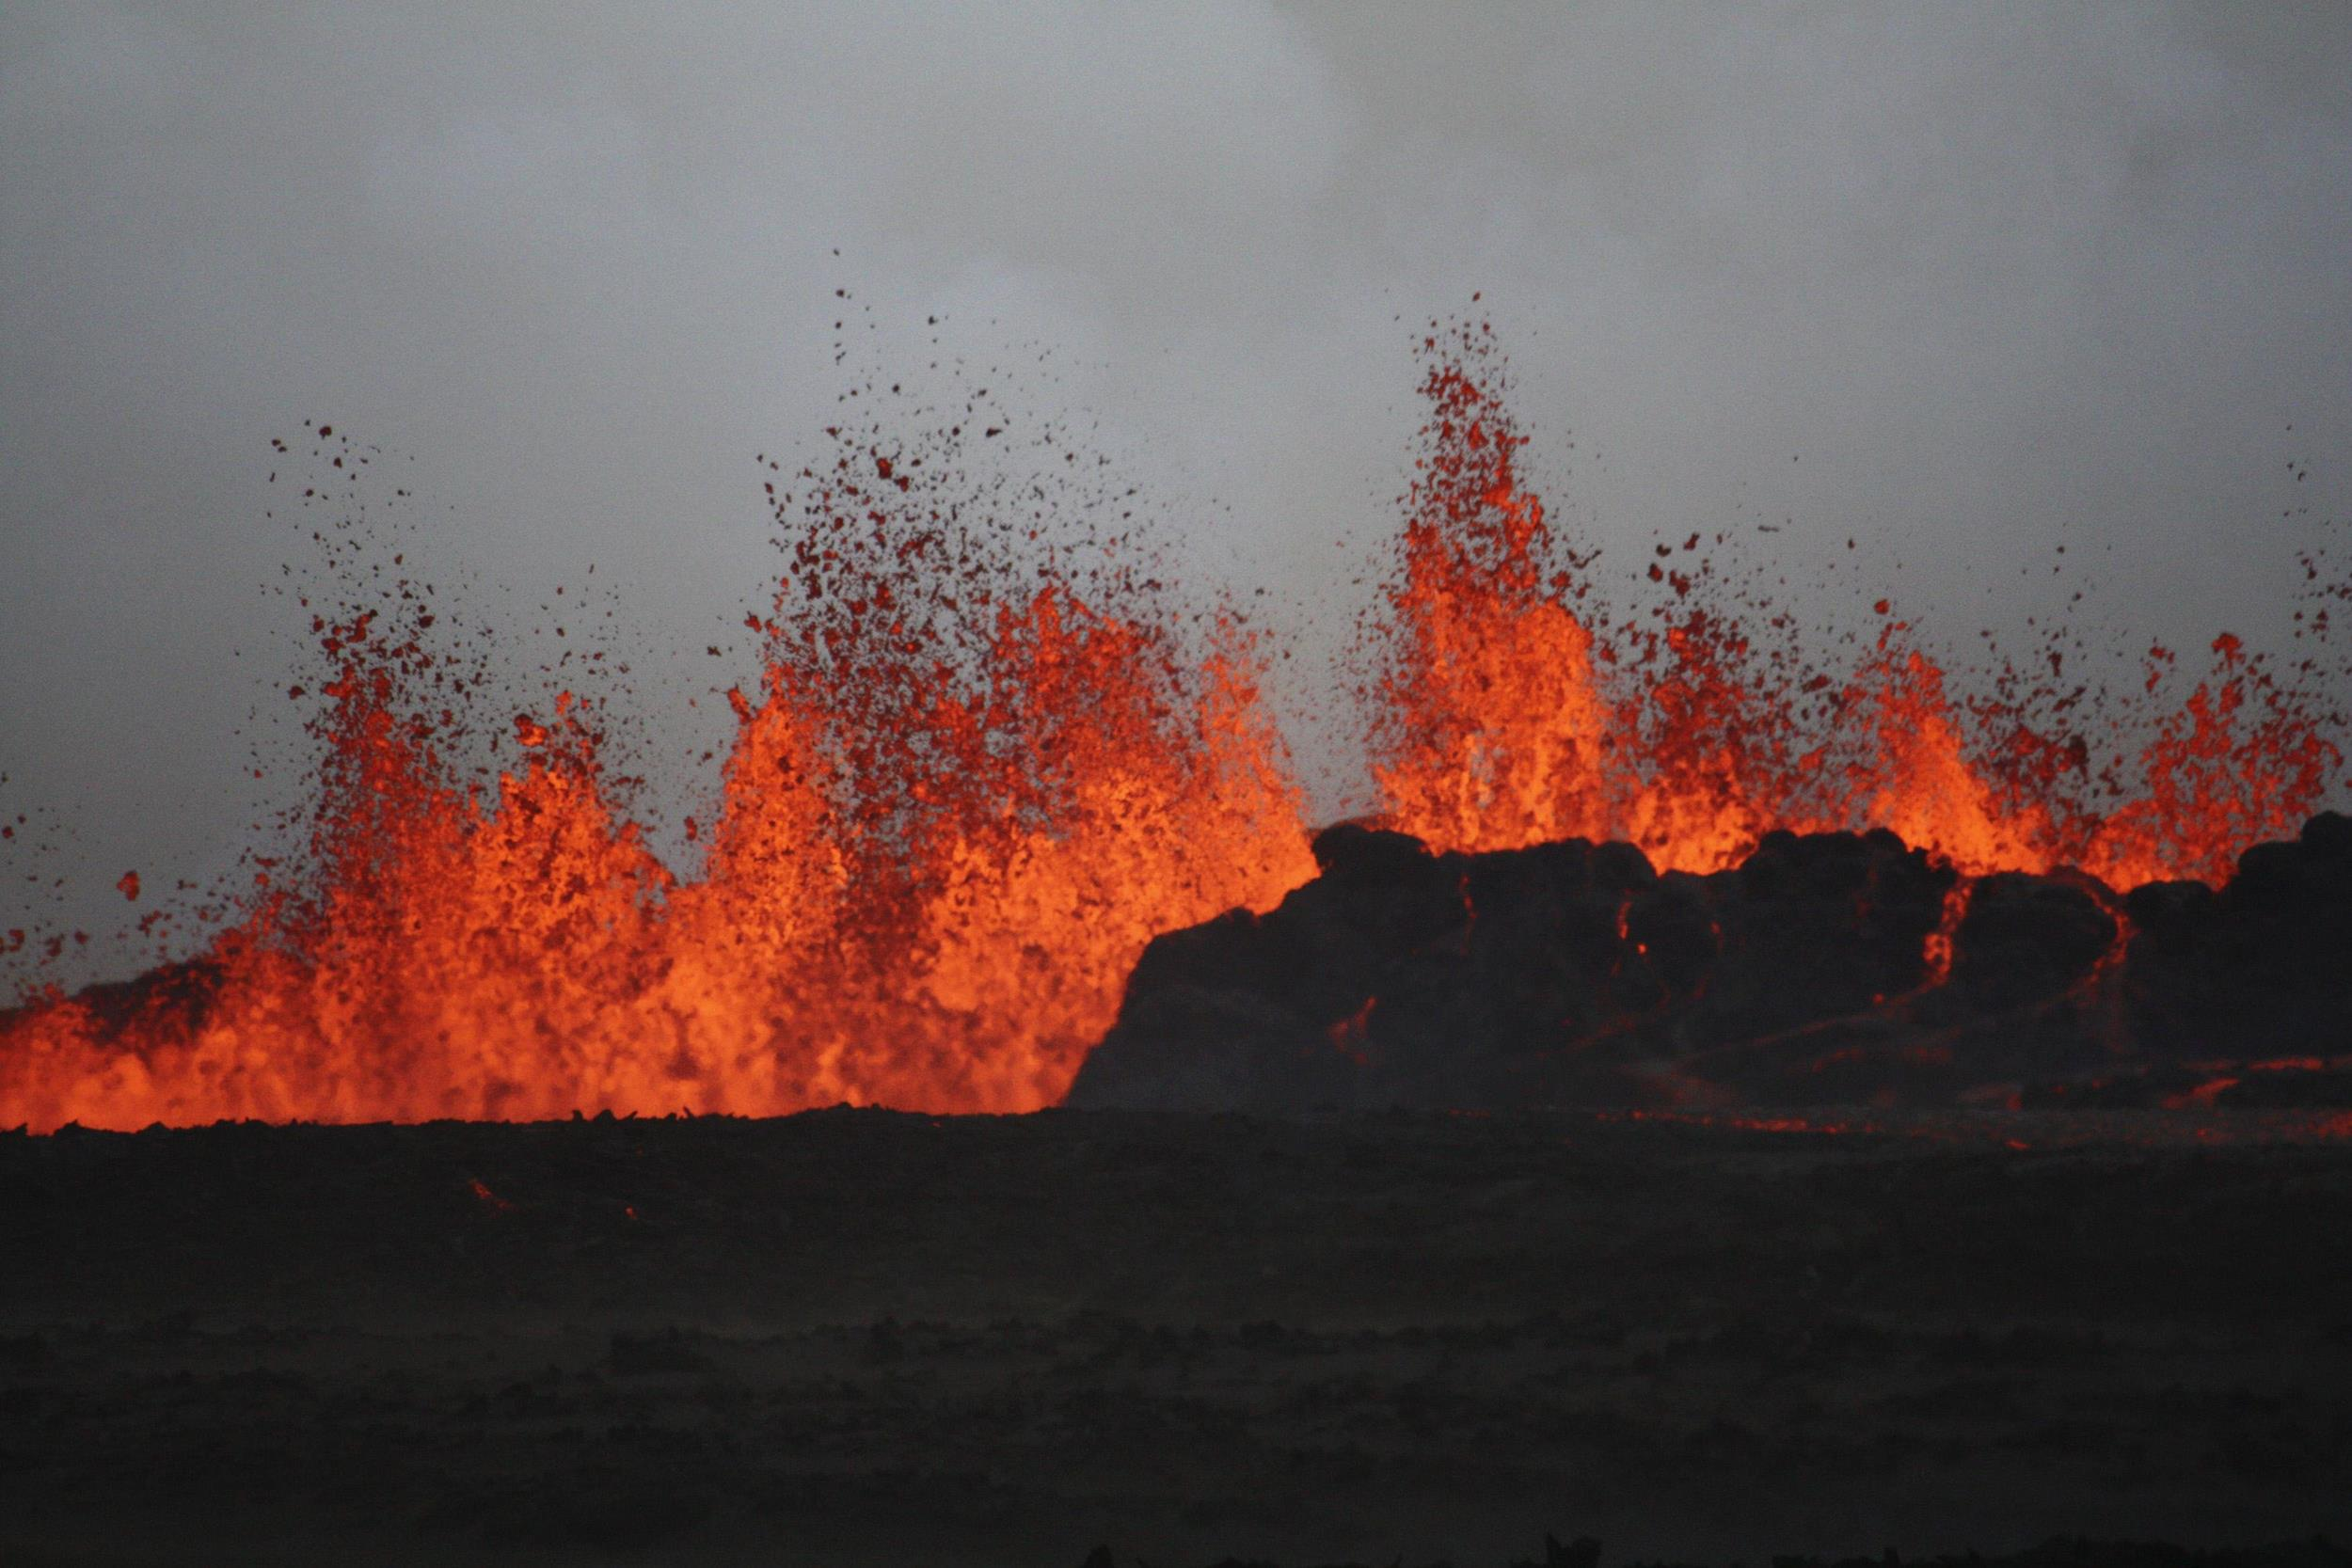 Image: Lava flows on the the ground after the Bardabunga volcano erupted